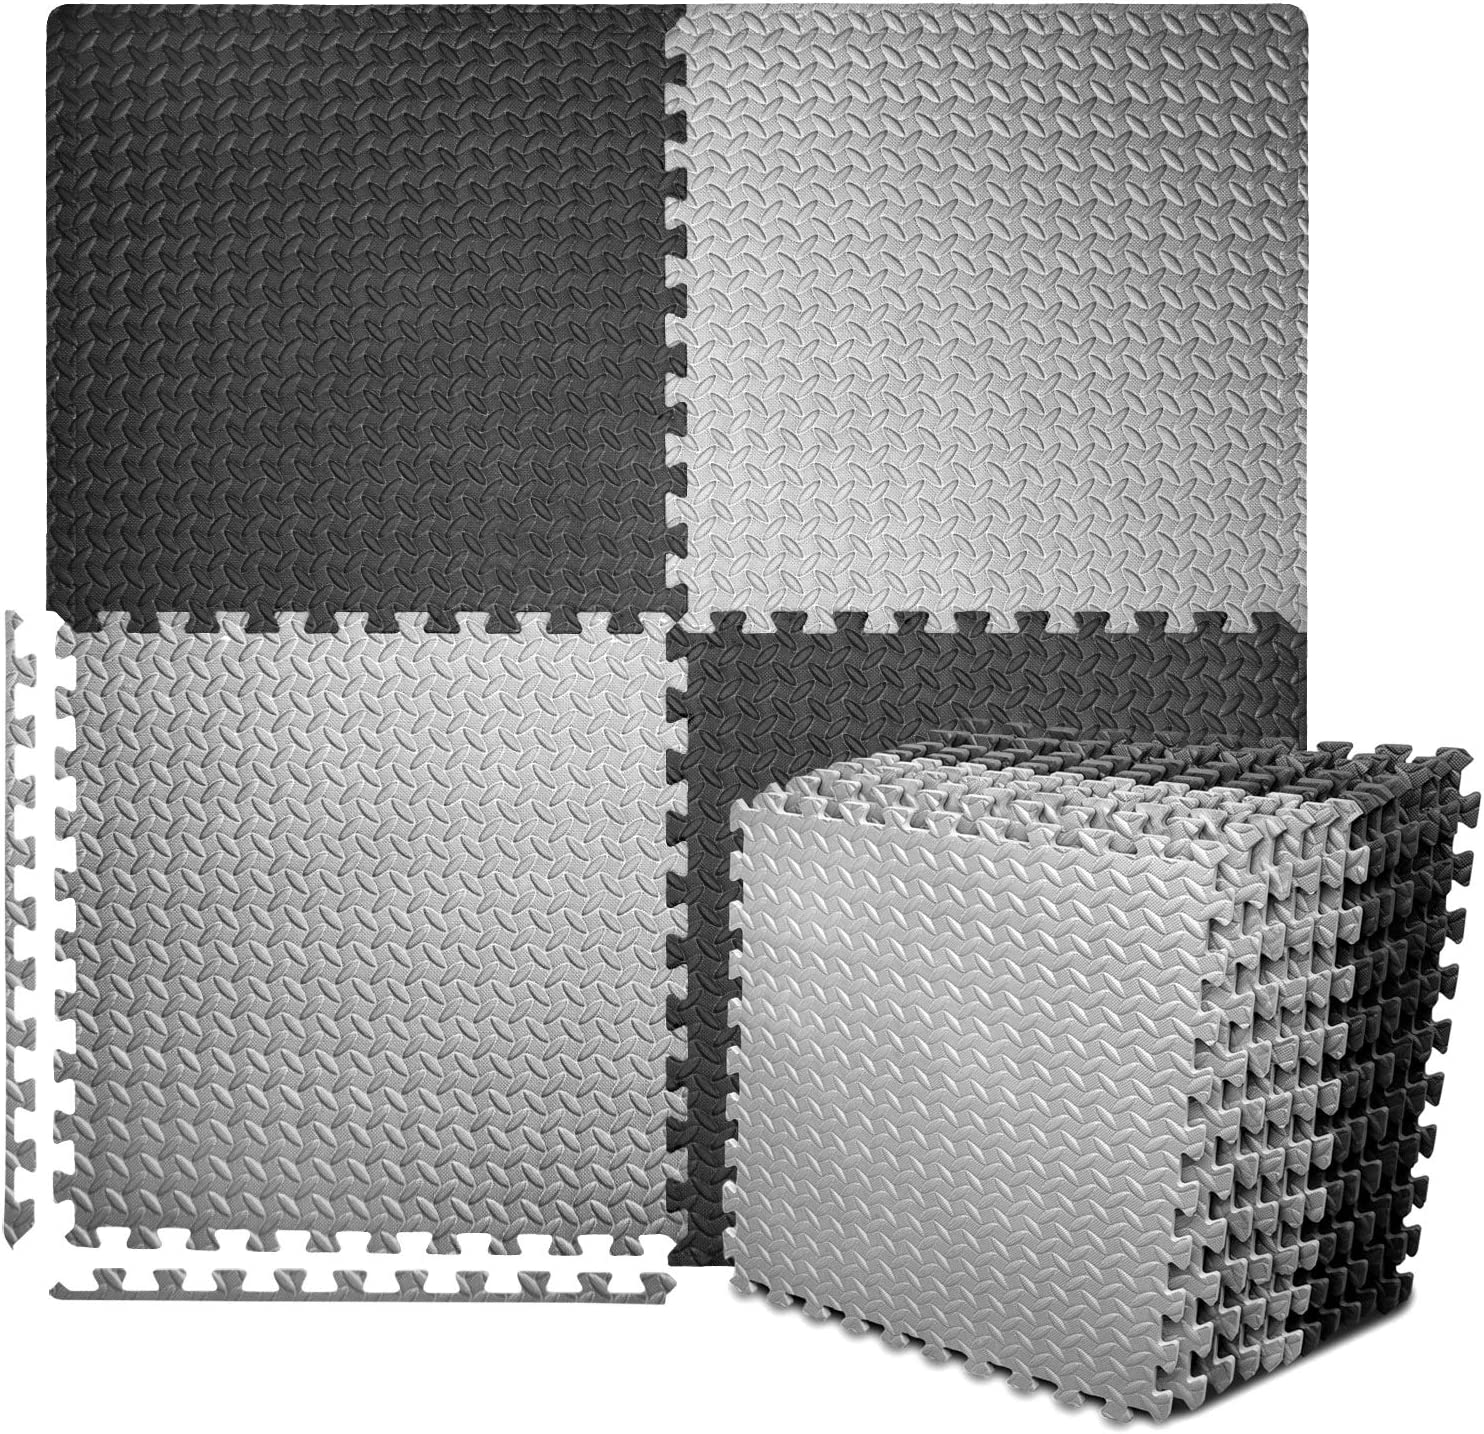 SIRUINI Rubber Mats for Gym,Puzzle Exercise Mat,with EVA Foam Interlocking Tiles for Exercise Gymnastics and Home Gym Protective Flooring